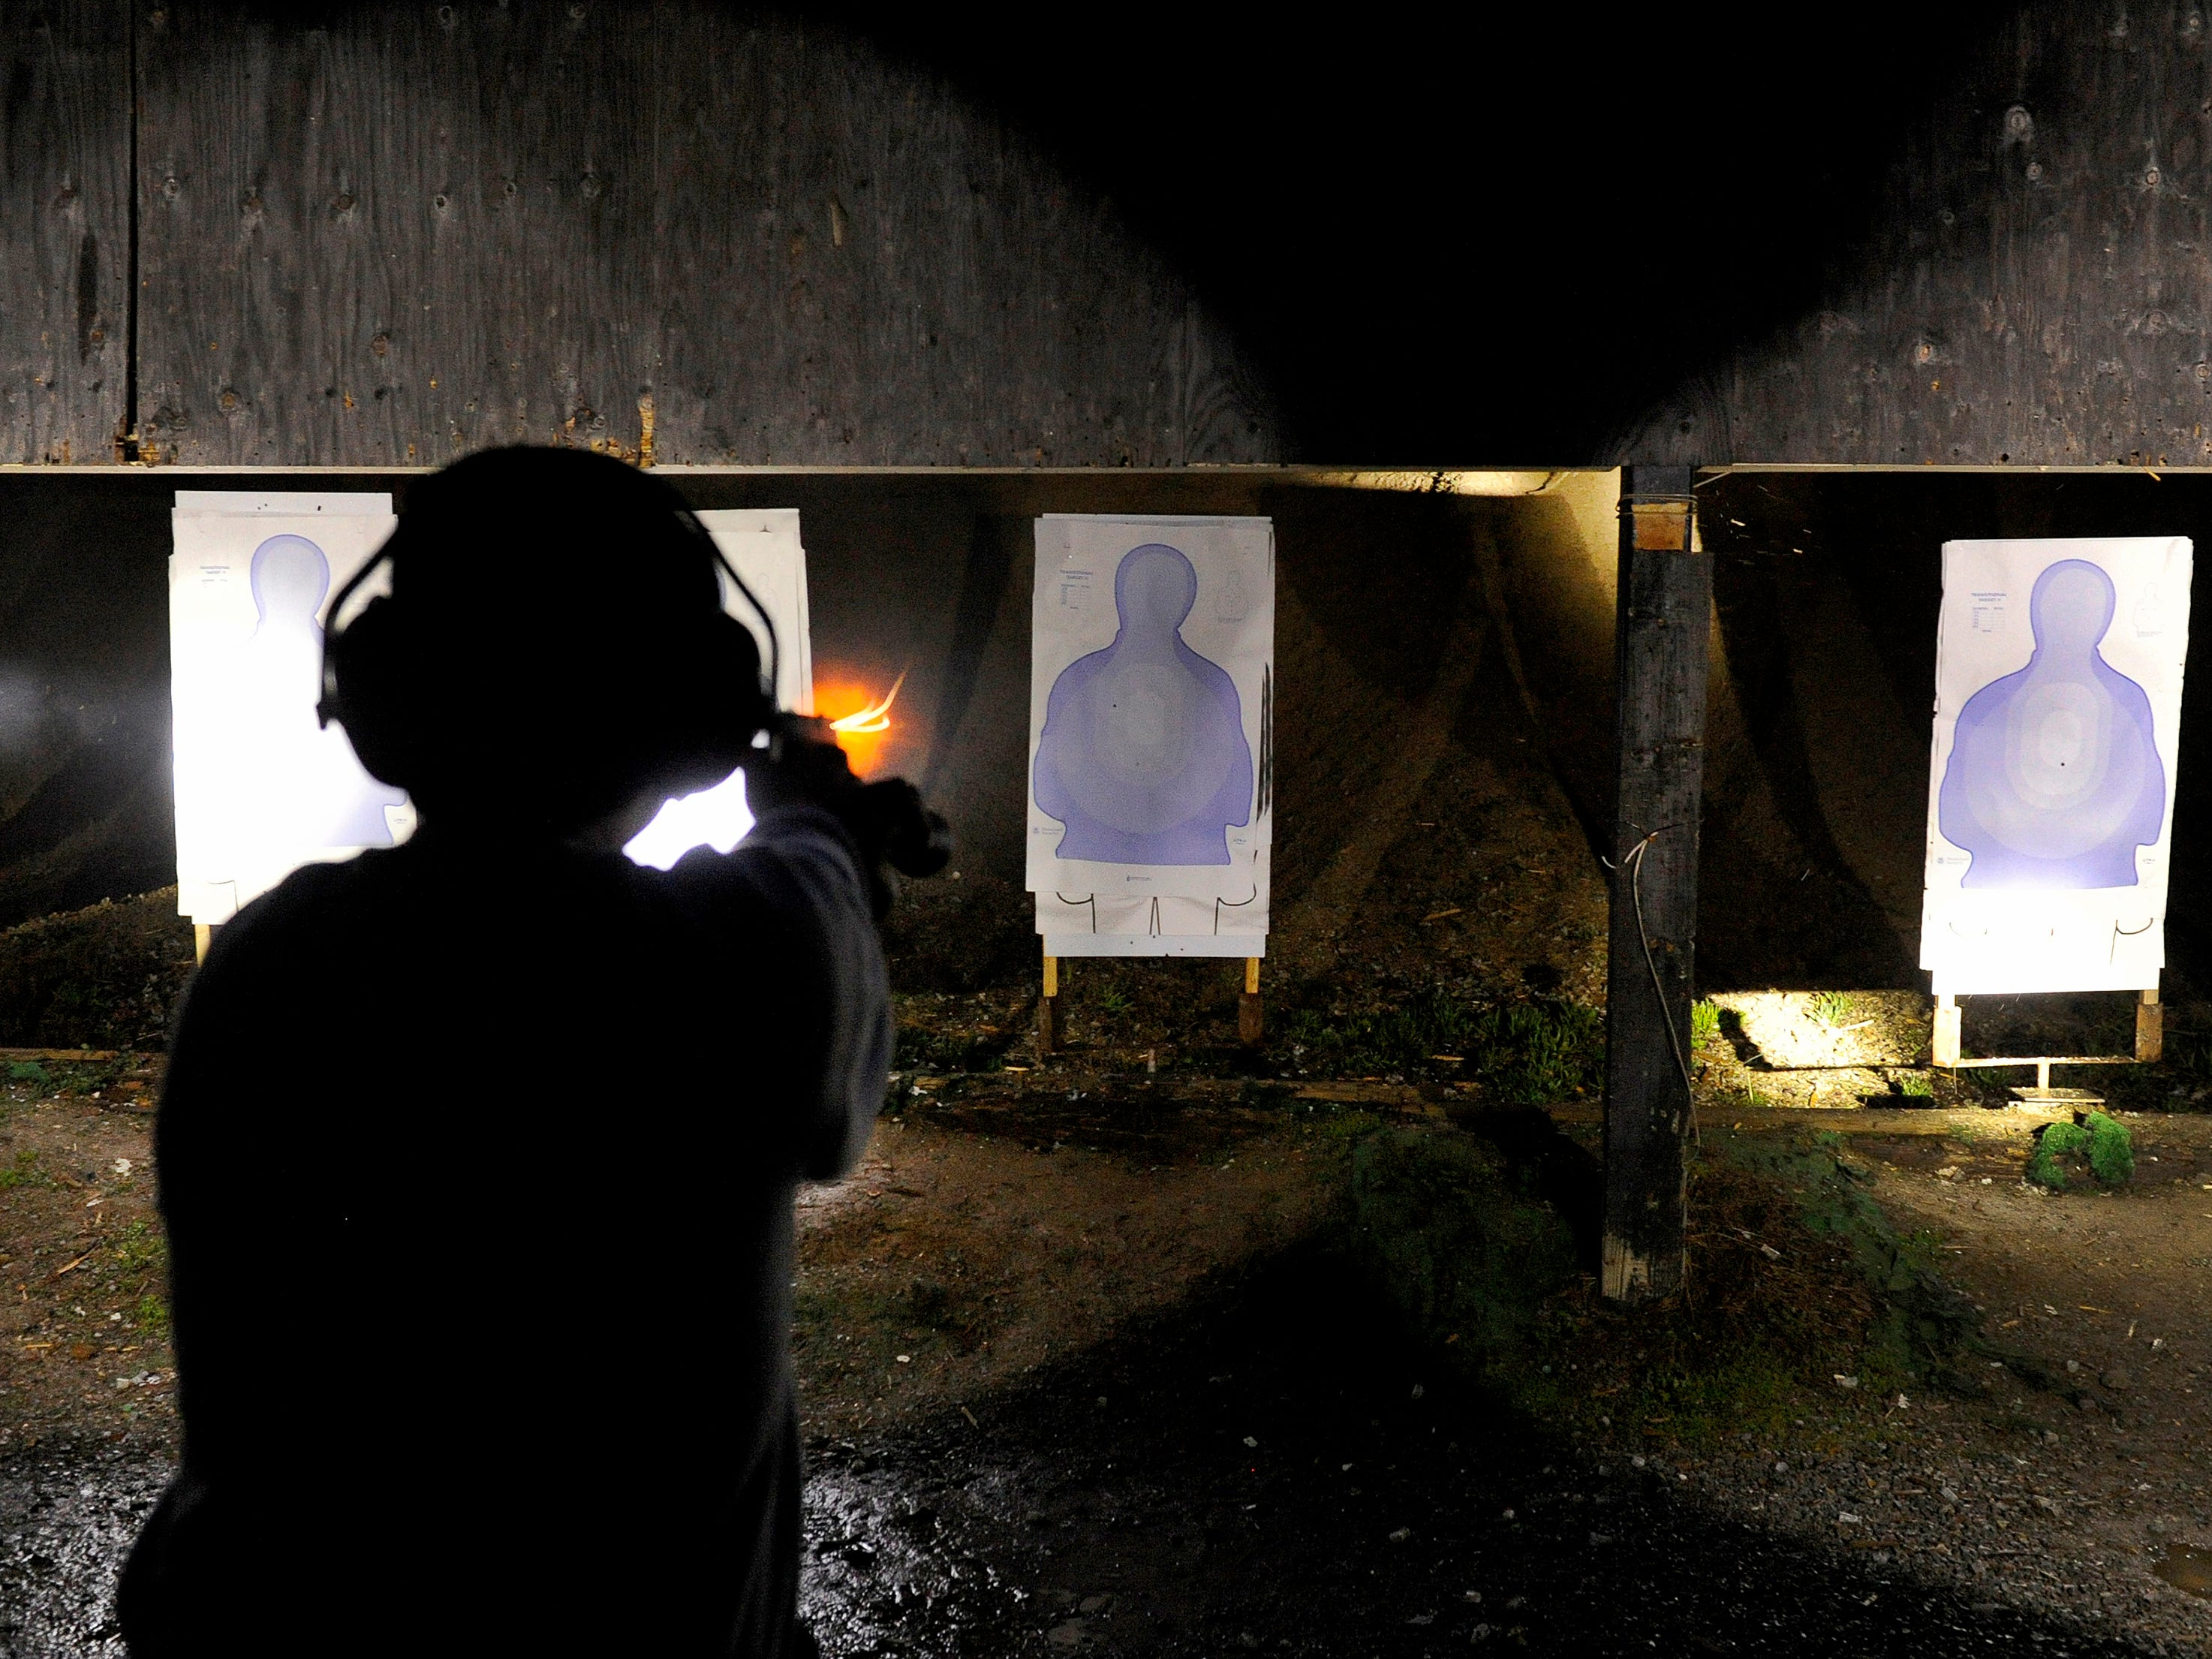 """Sgt. Kenny House, THP firearms instructor, says the learning to fire your weapon with a flashlight in the support hand, """"Is vital for an officer safety."""" An officer uses their flashlight more than just at night. House says, """"Bottom line it's all about safety and the officers being competent with all the weapons they are issued."""" Cadet Alex Evans remembers, """"We got down to the range after the firearms classroom work and I was just having a ball, cause I've loved shooting since joining the military."""""""